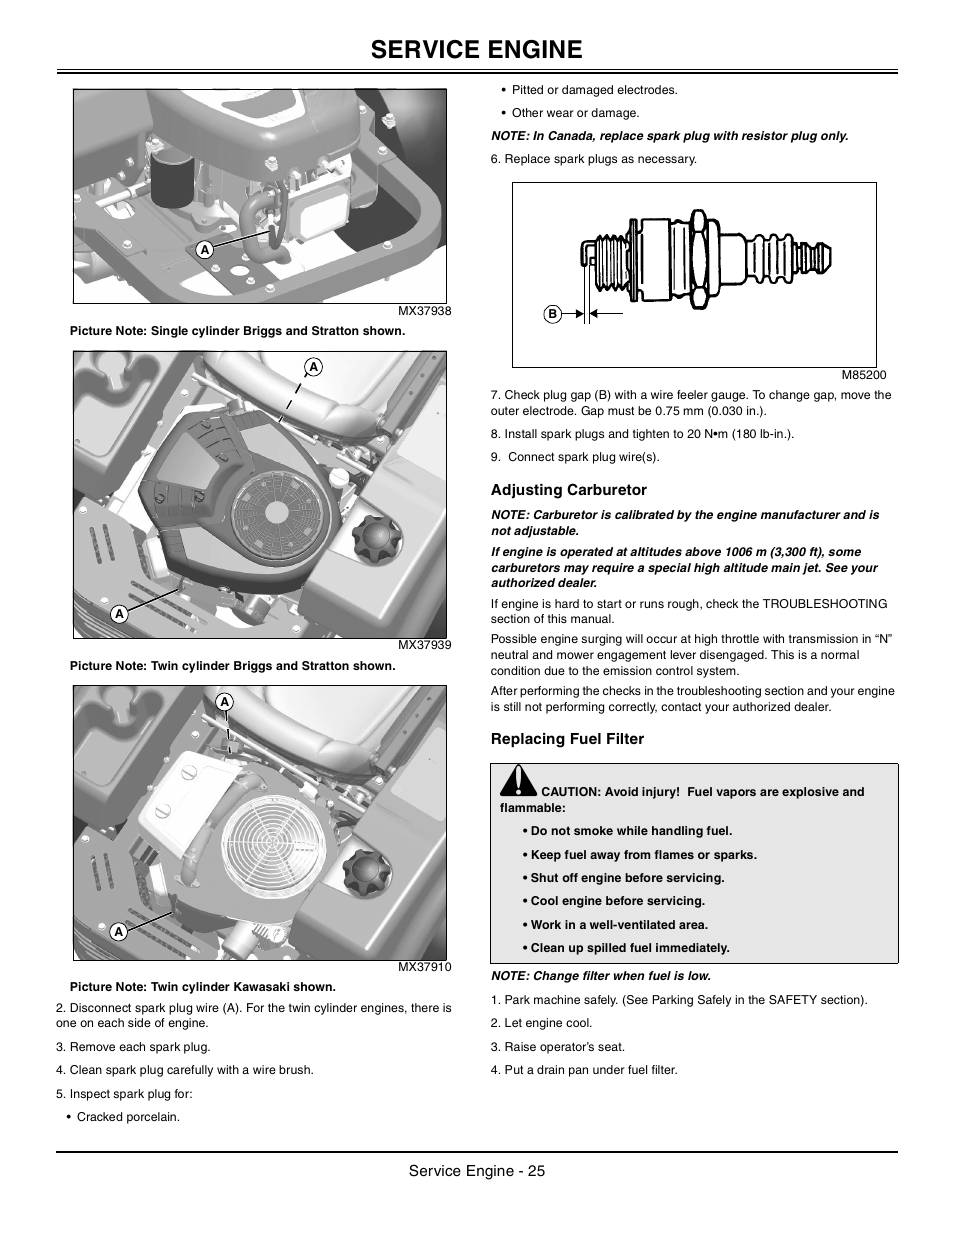 Adjusting Carburetor Replacing Fuel Filter Service Engine John. Adjusting Carburetor Replacing Fuel Filter Service Engine John Deere Z425 User Manual Page 26 48. John Deere. John Deere Z445 Zero Turn Transmission Diagram At Scoala.co